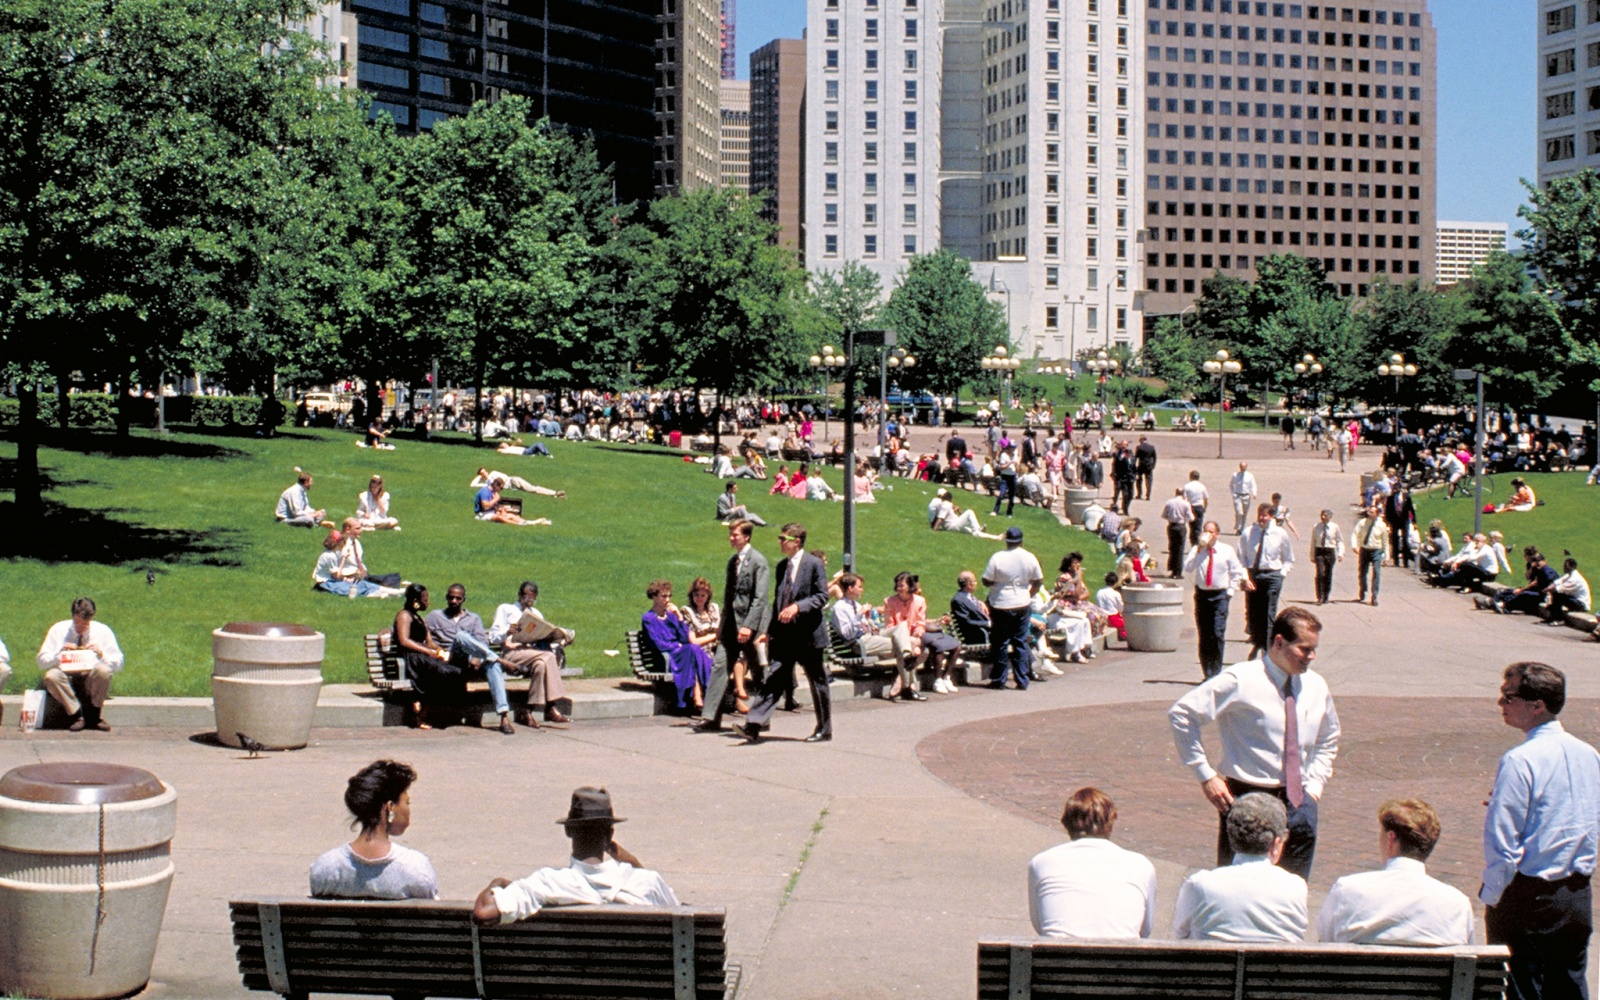 People enjoying a city park in Atlanta, GA